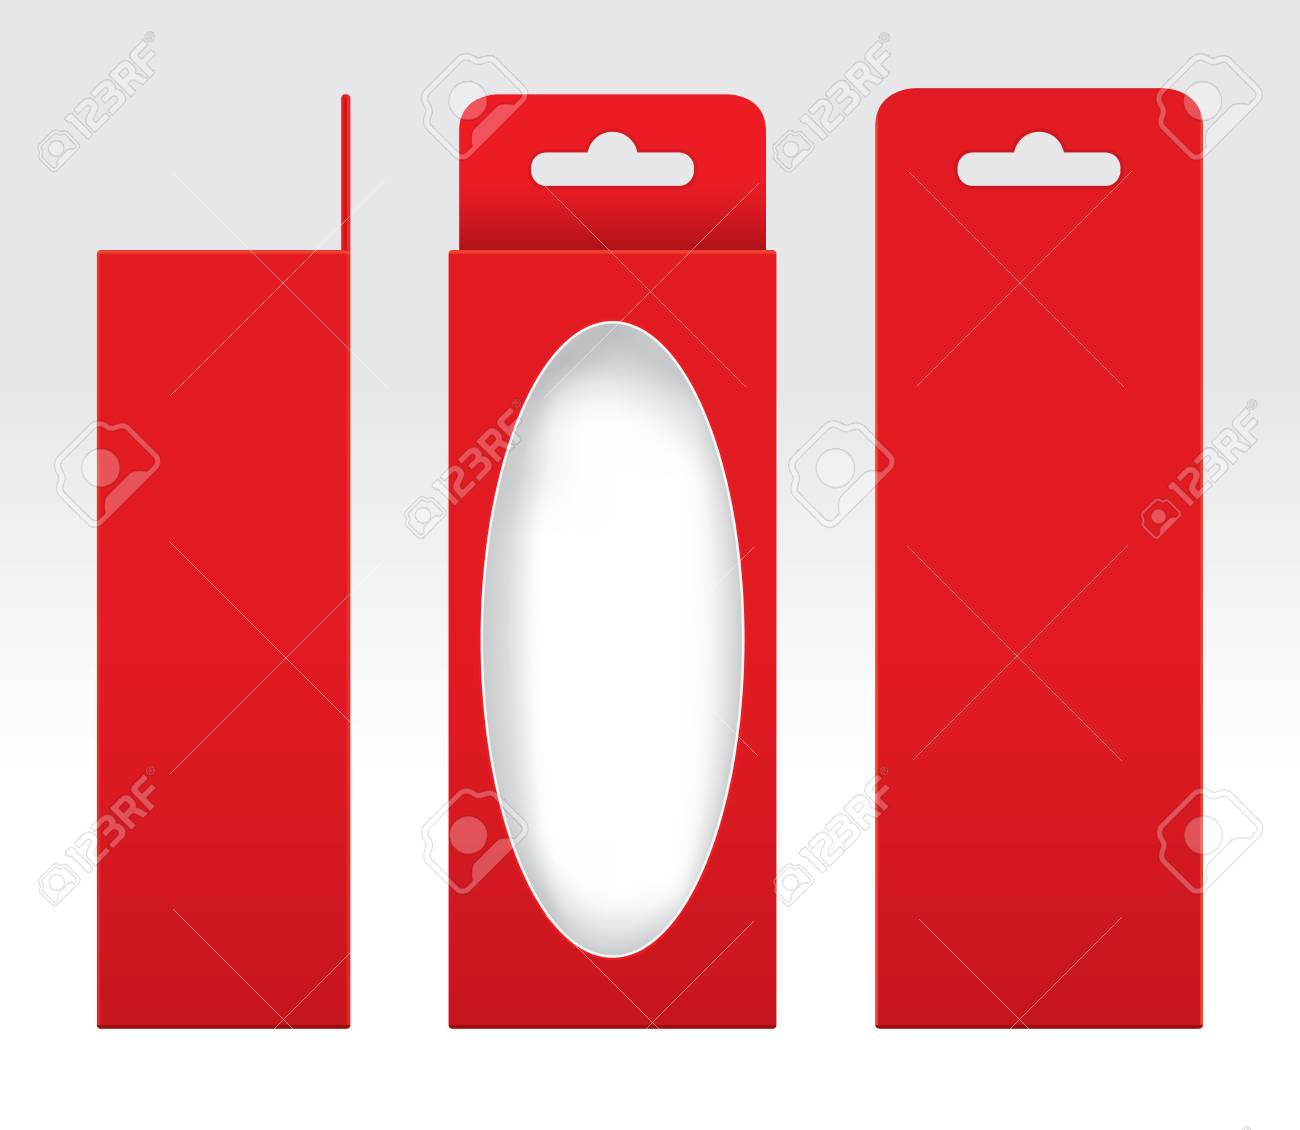 hanging red box window cut out packaging template blank empty